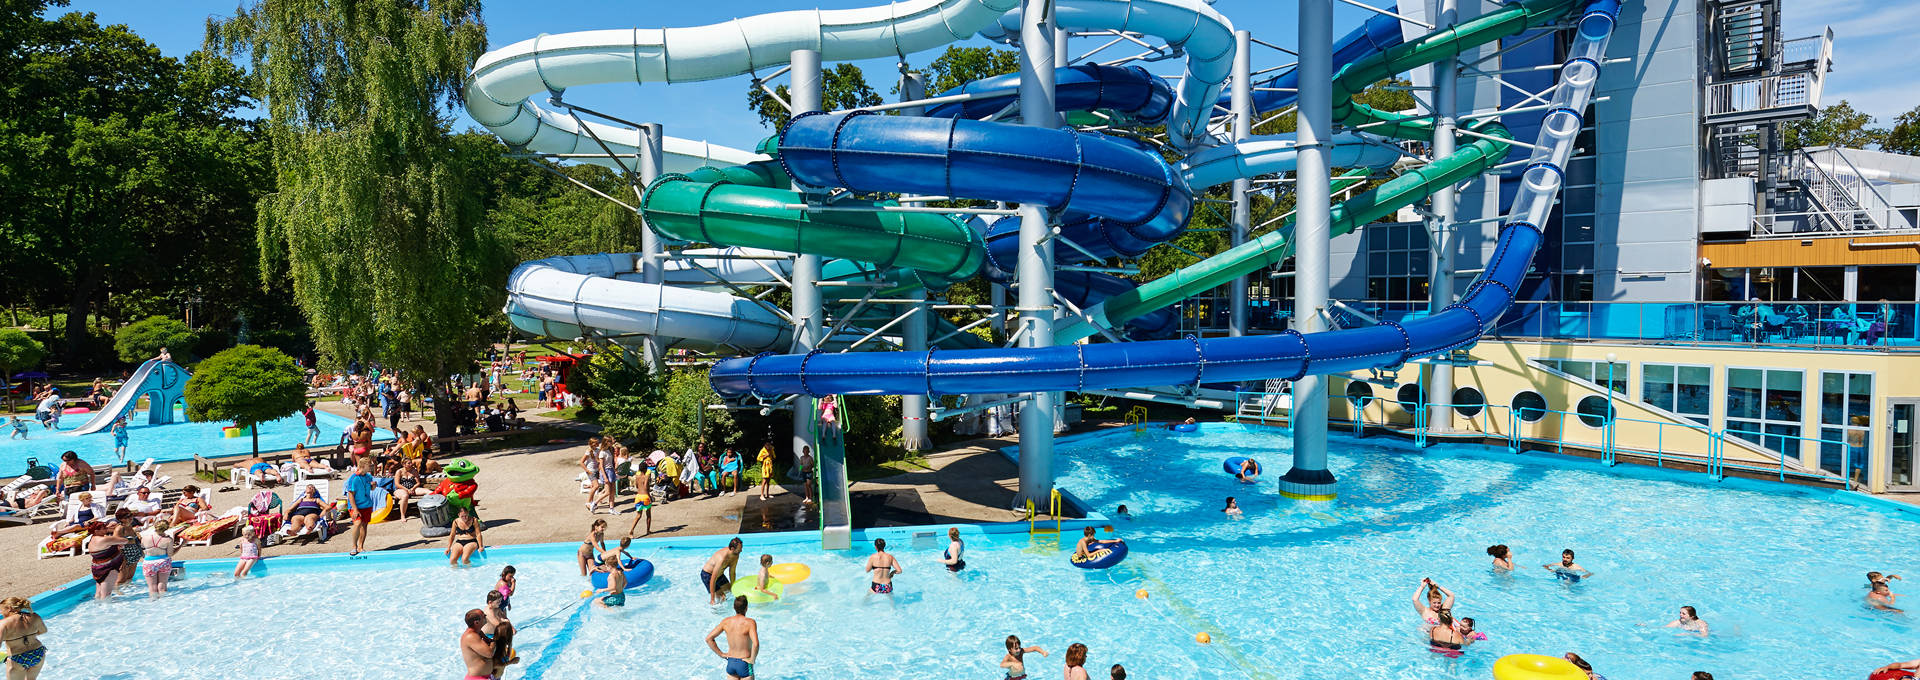 Buitenbad tikibad - Campsites in holland with swimming pool ...